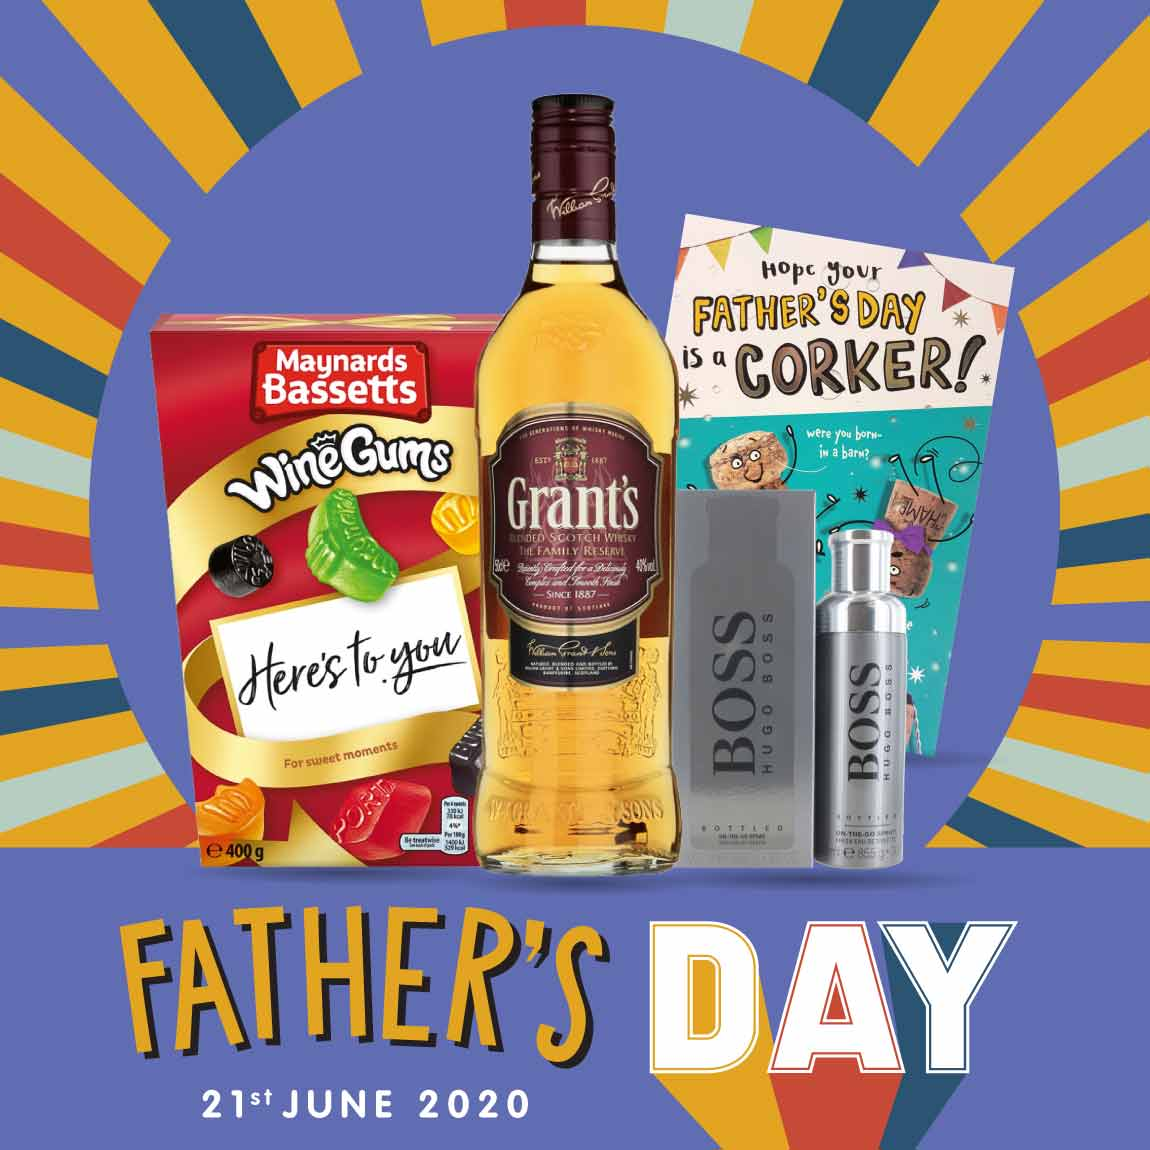 Save on Father's Day Gifts in store at B&M.